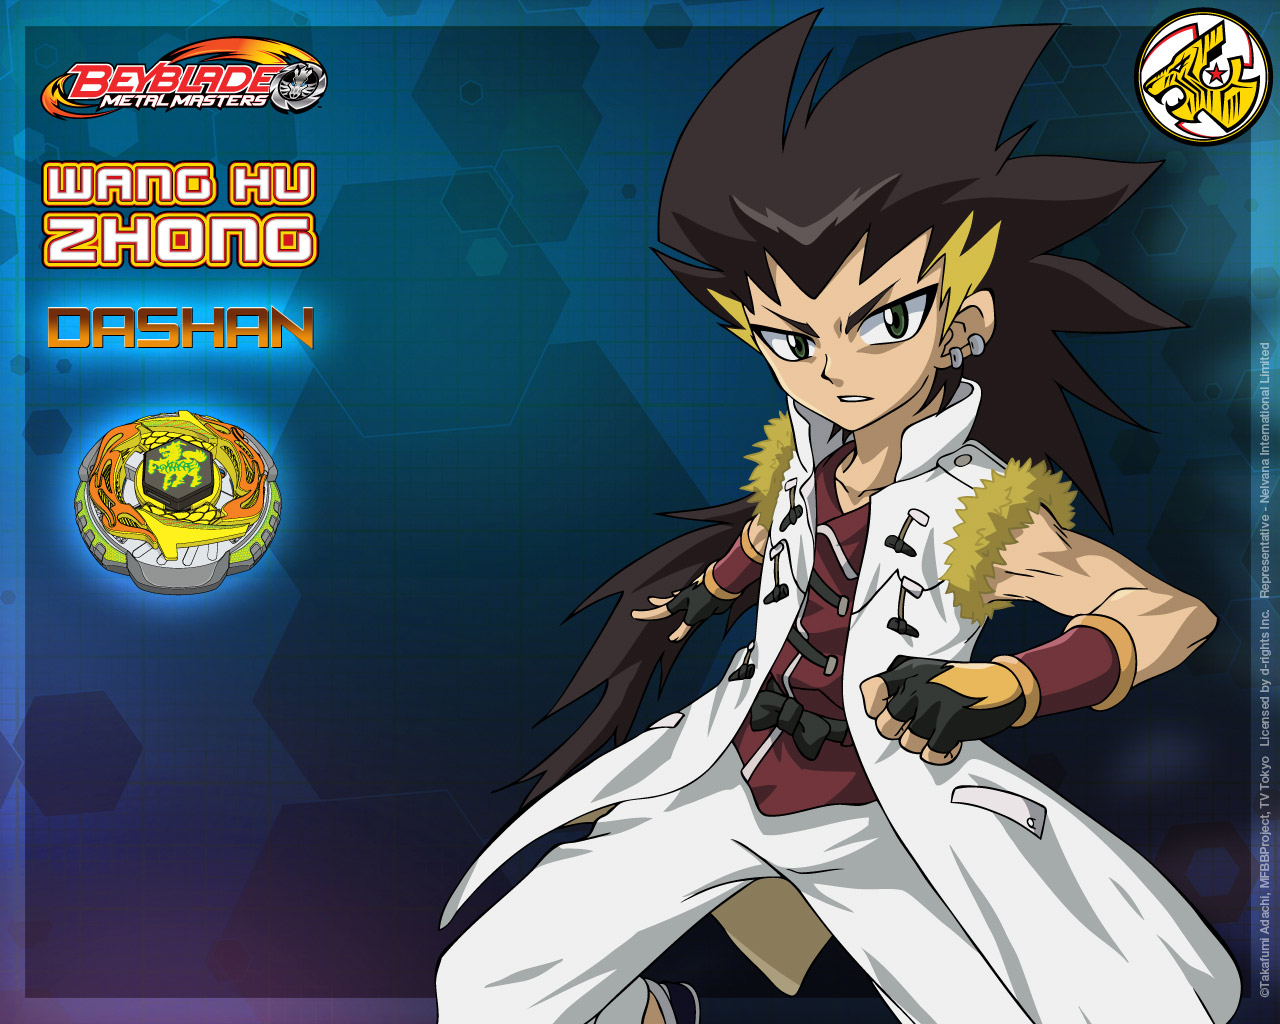 BEYBLADE METAL MASTERS - PRISTOIC